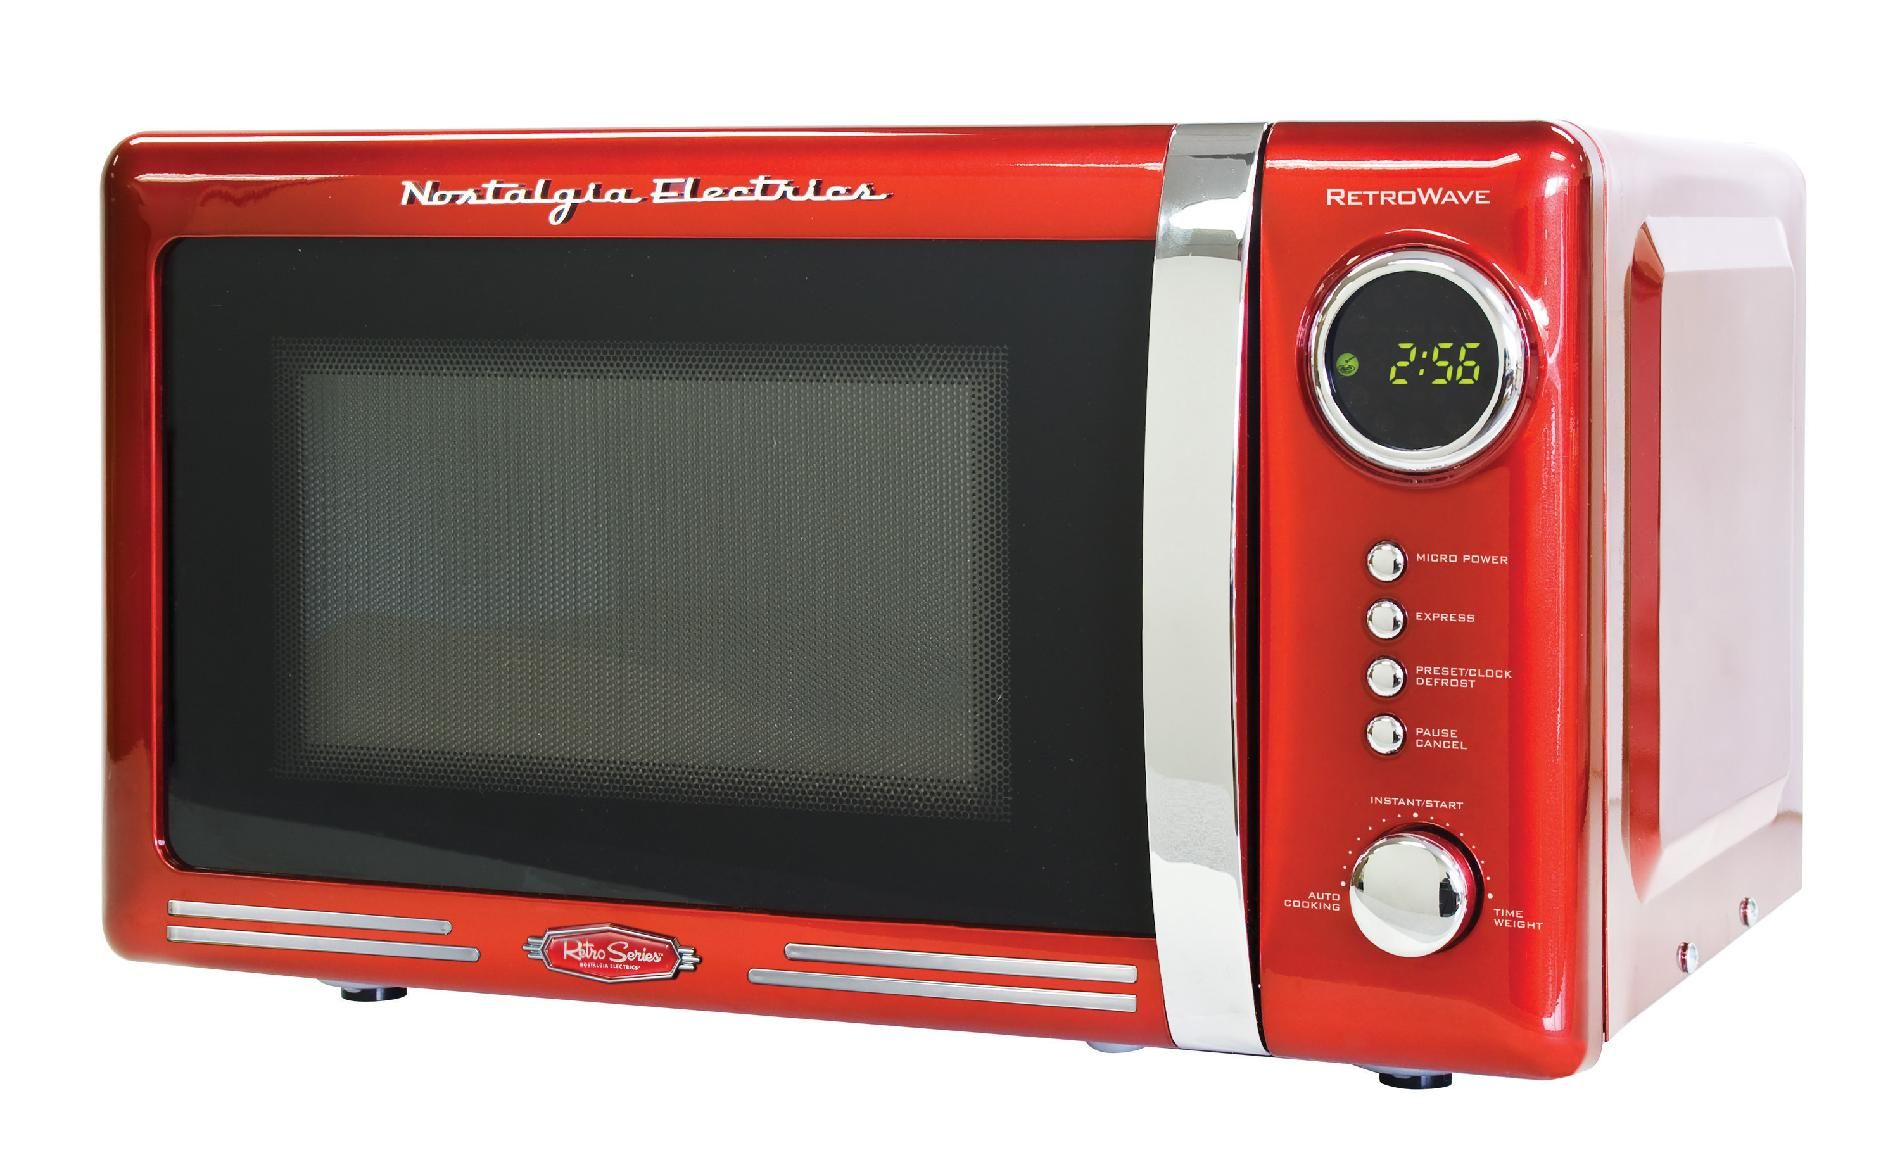 Add A Bit Of Colorful Fun To Your Kitchen Style With The Red Retro Microwave Oven